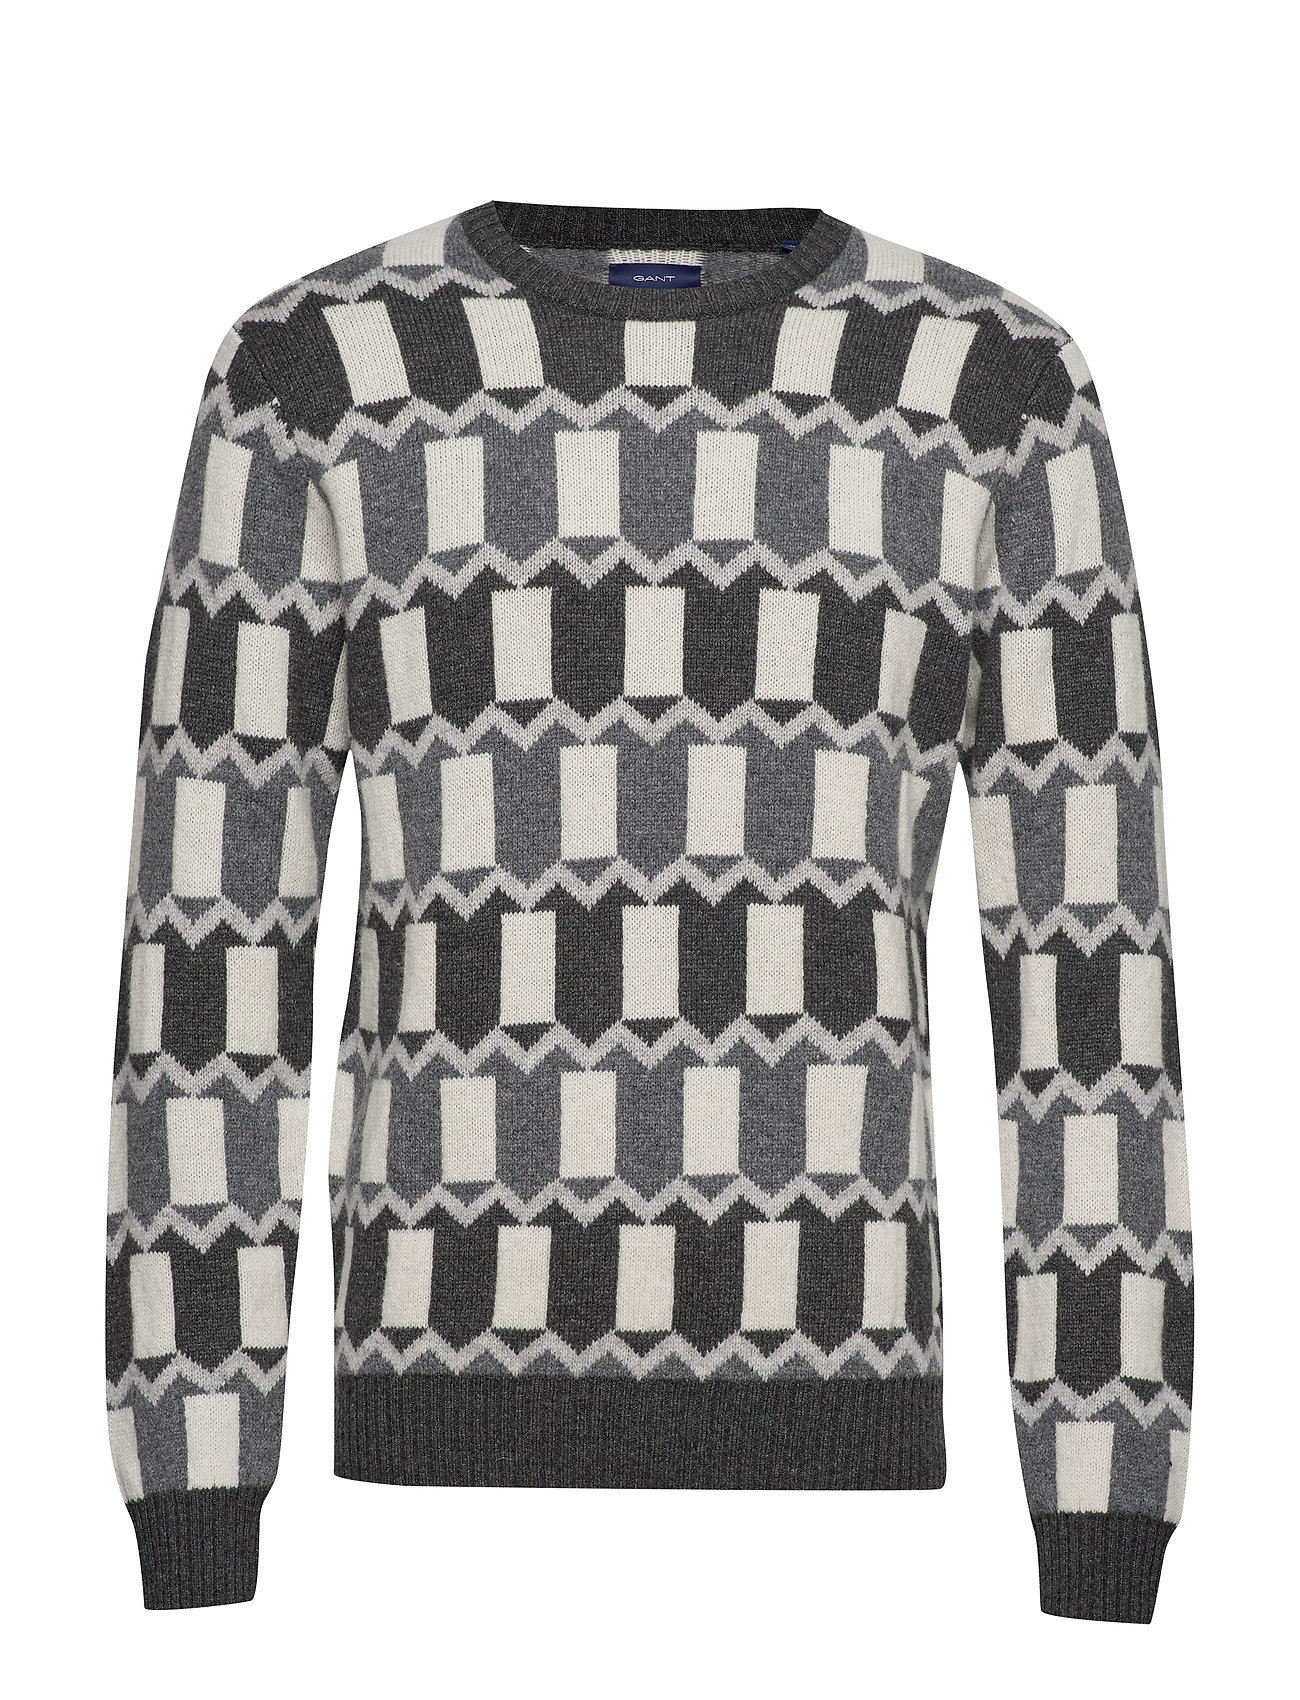 GANT D2. HOLIDAY ALLOVER FAIRISLE CREW - DK CHARCOAL MELANGE